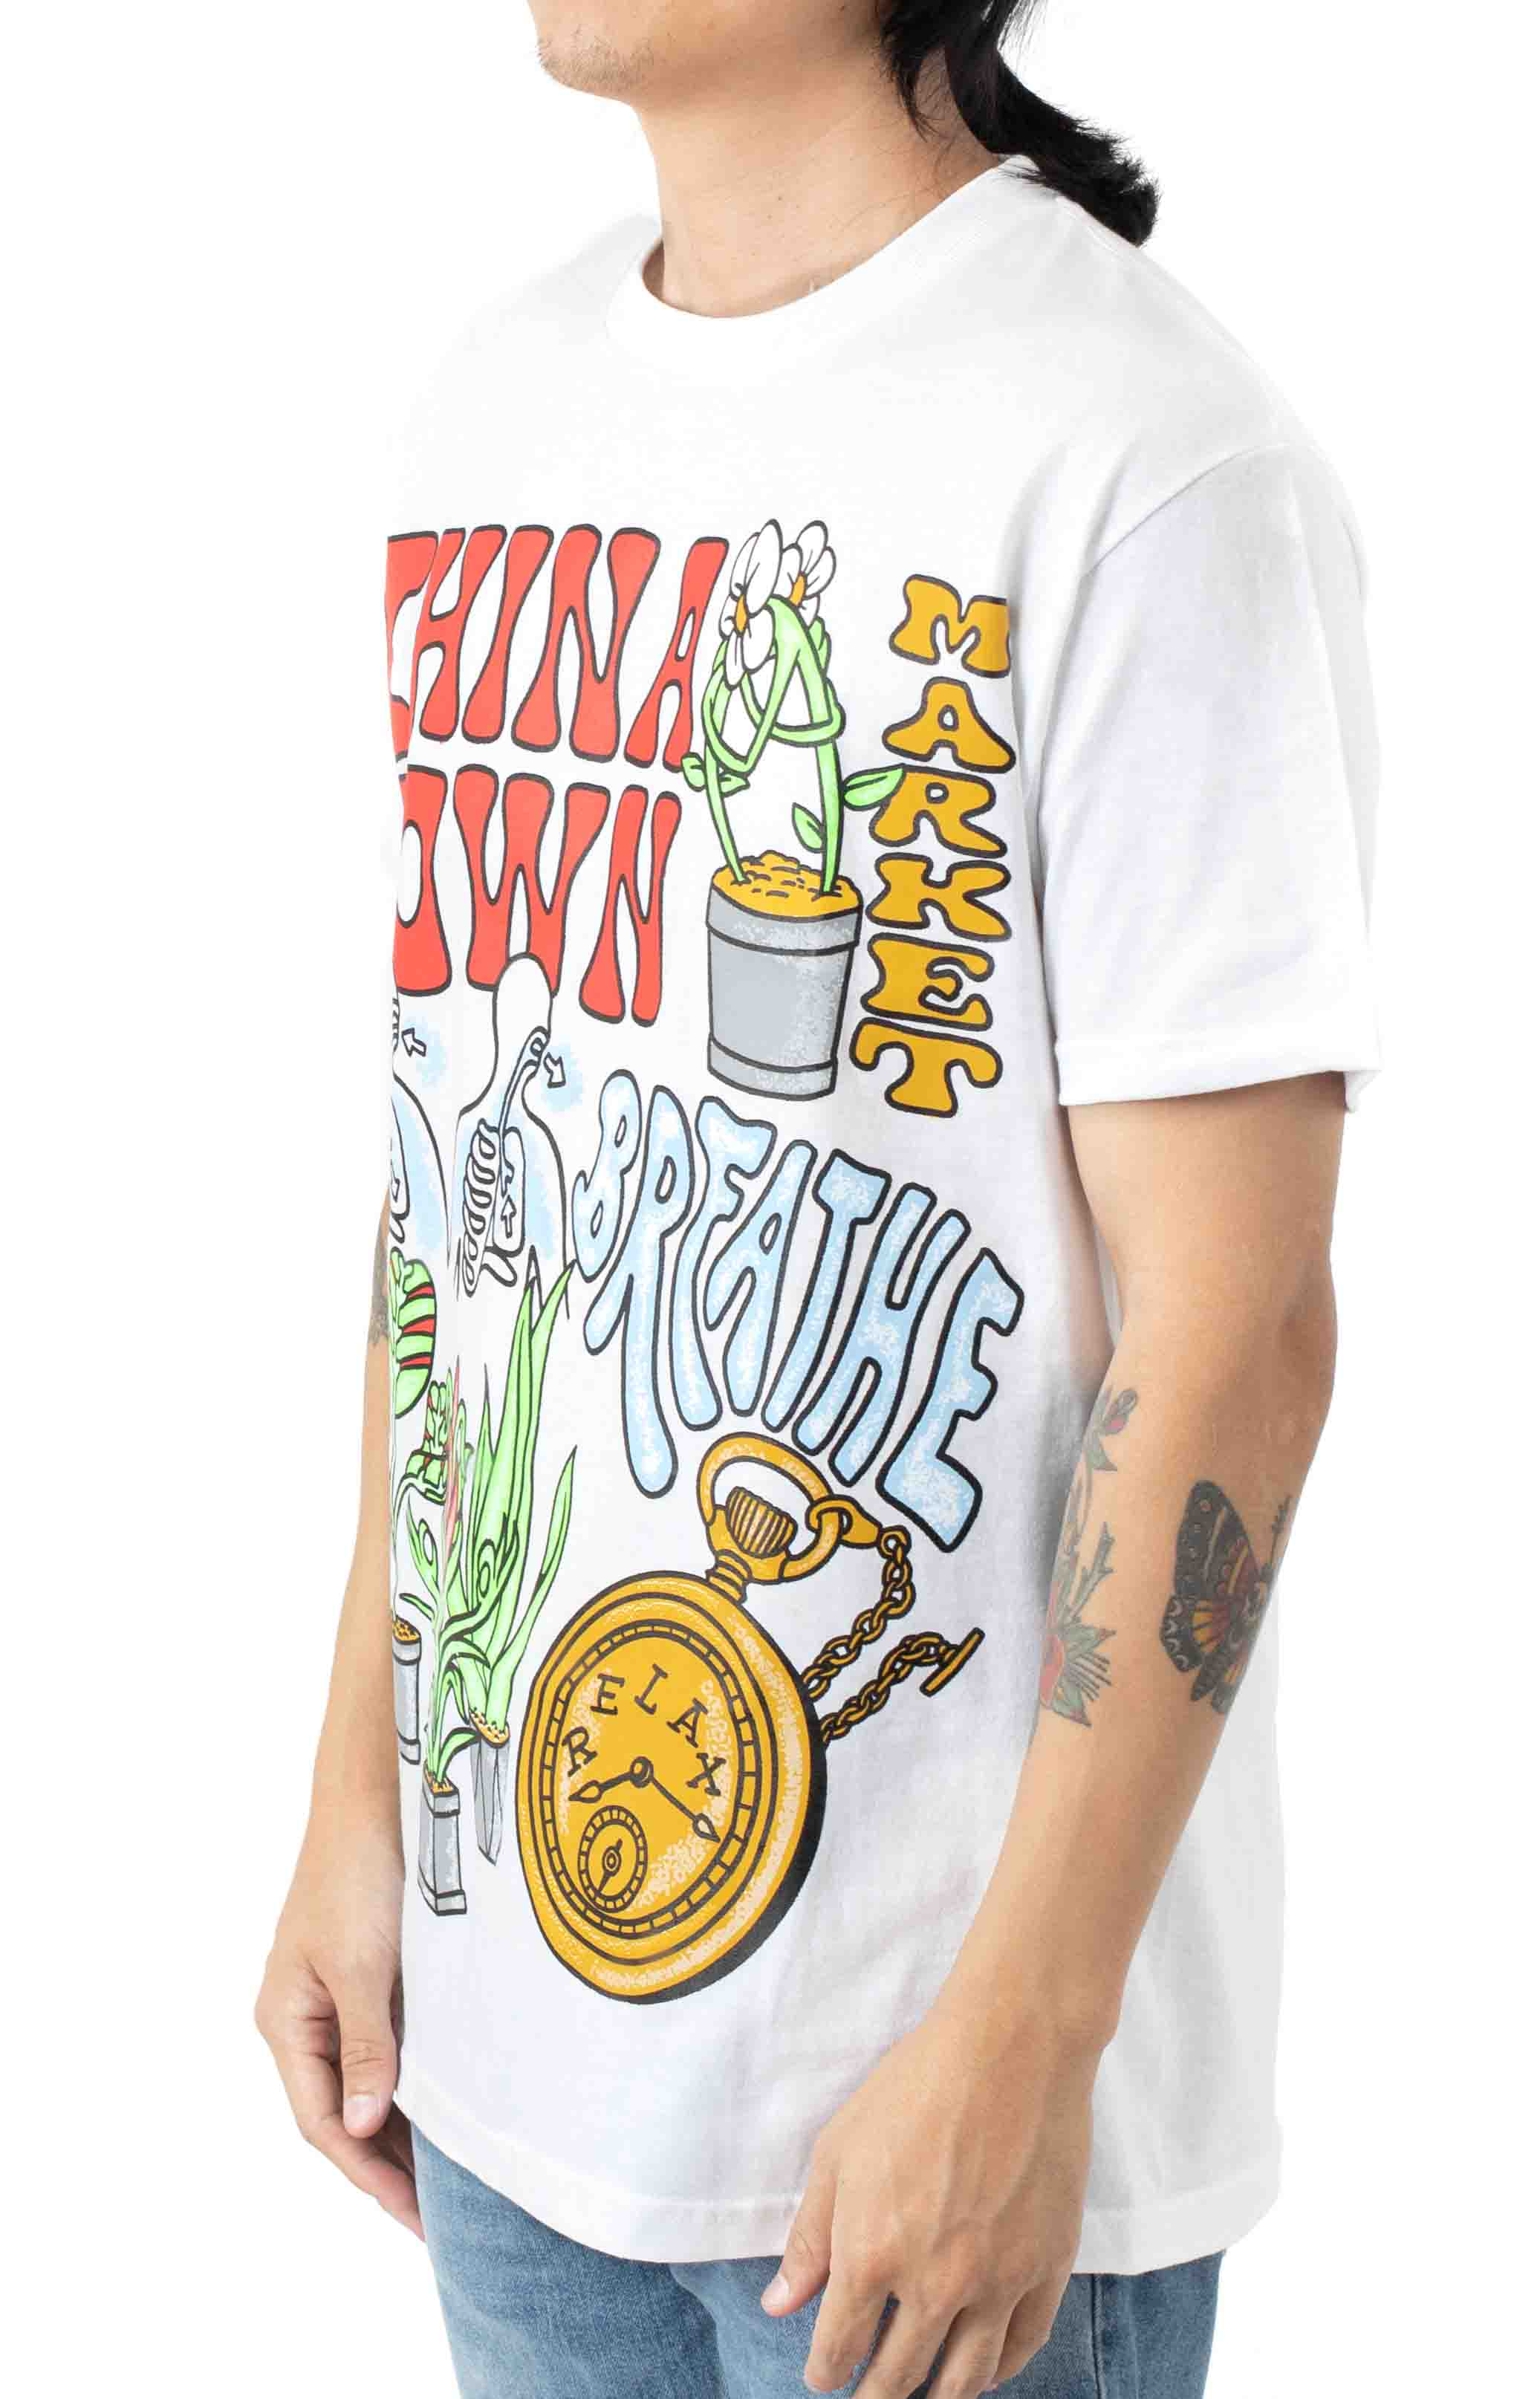 Chinatown Time Lord T-Shirt - White  2